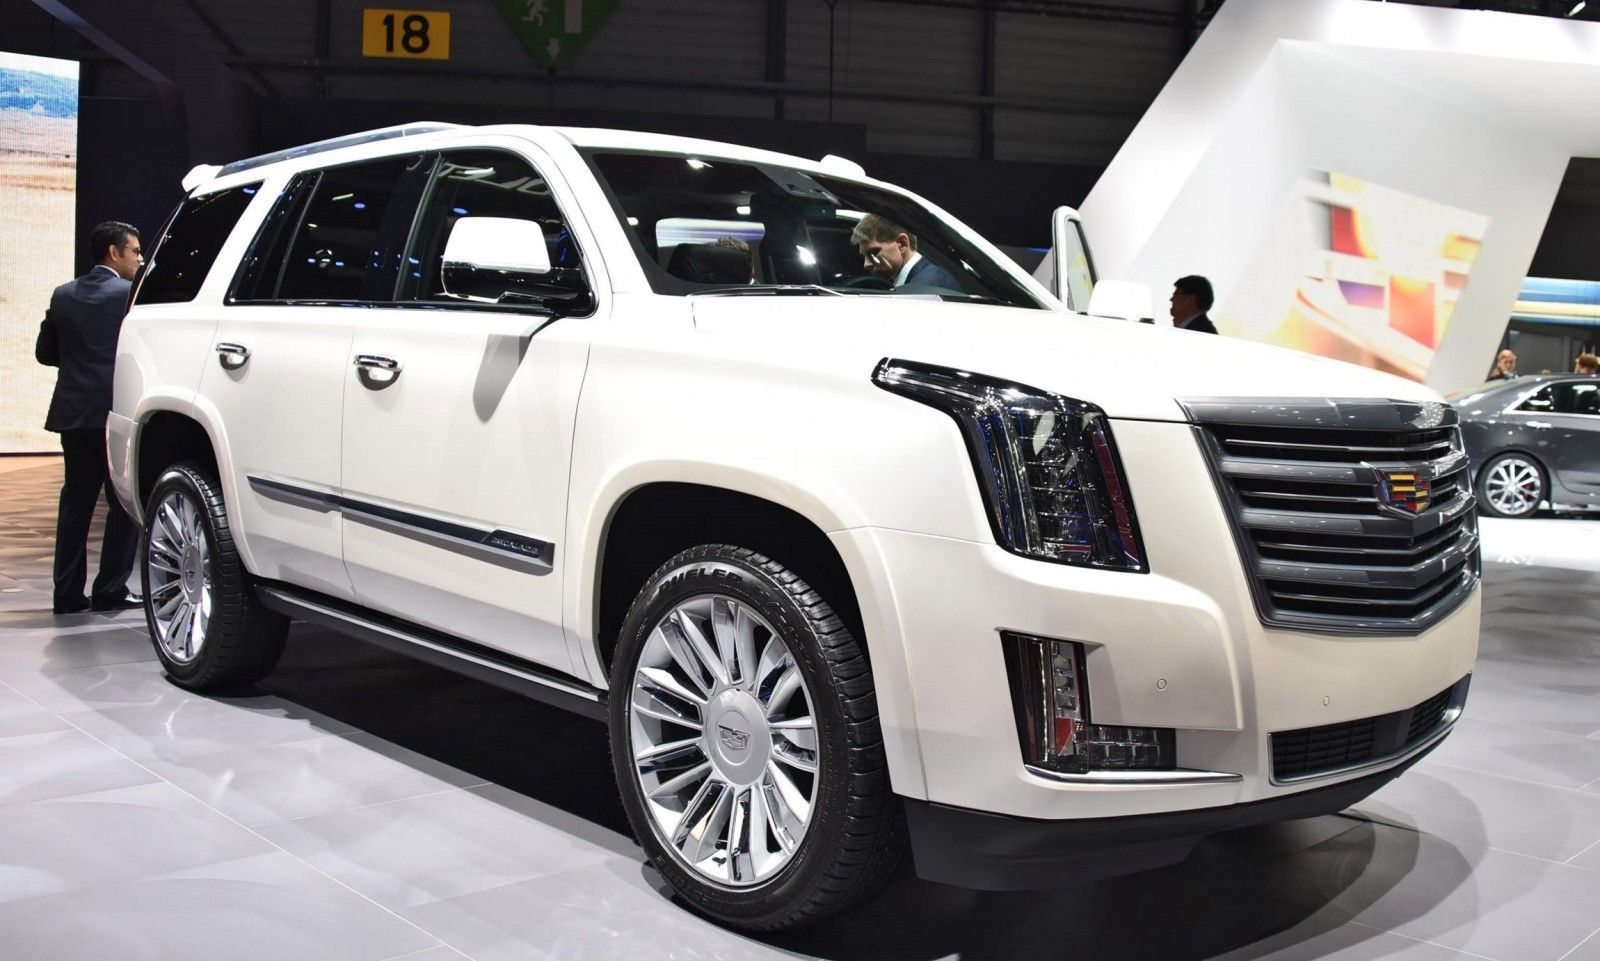 Geneva 2015 Gallery - Cadillac ATS-V and CTS-V + Euro-Spec Escalade Platinum 2